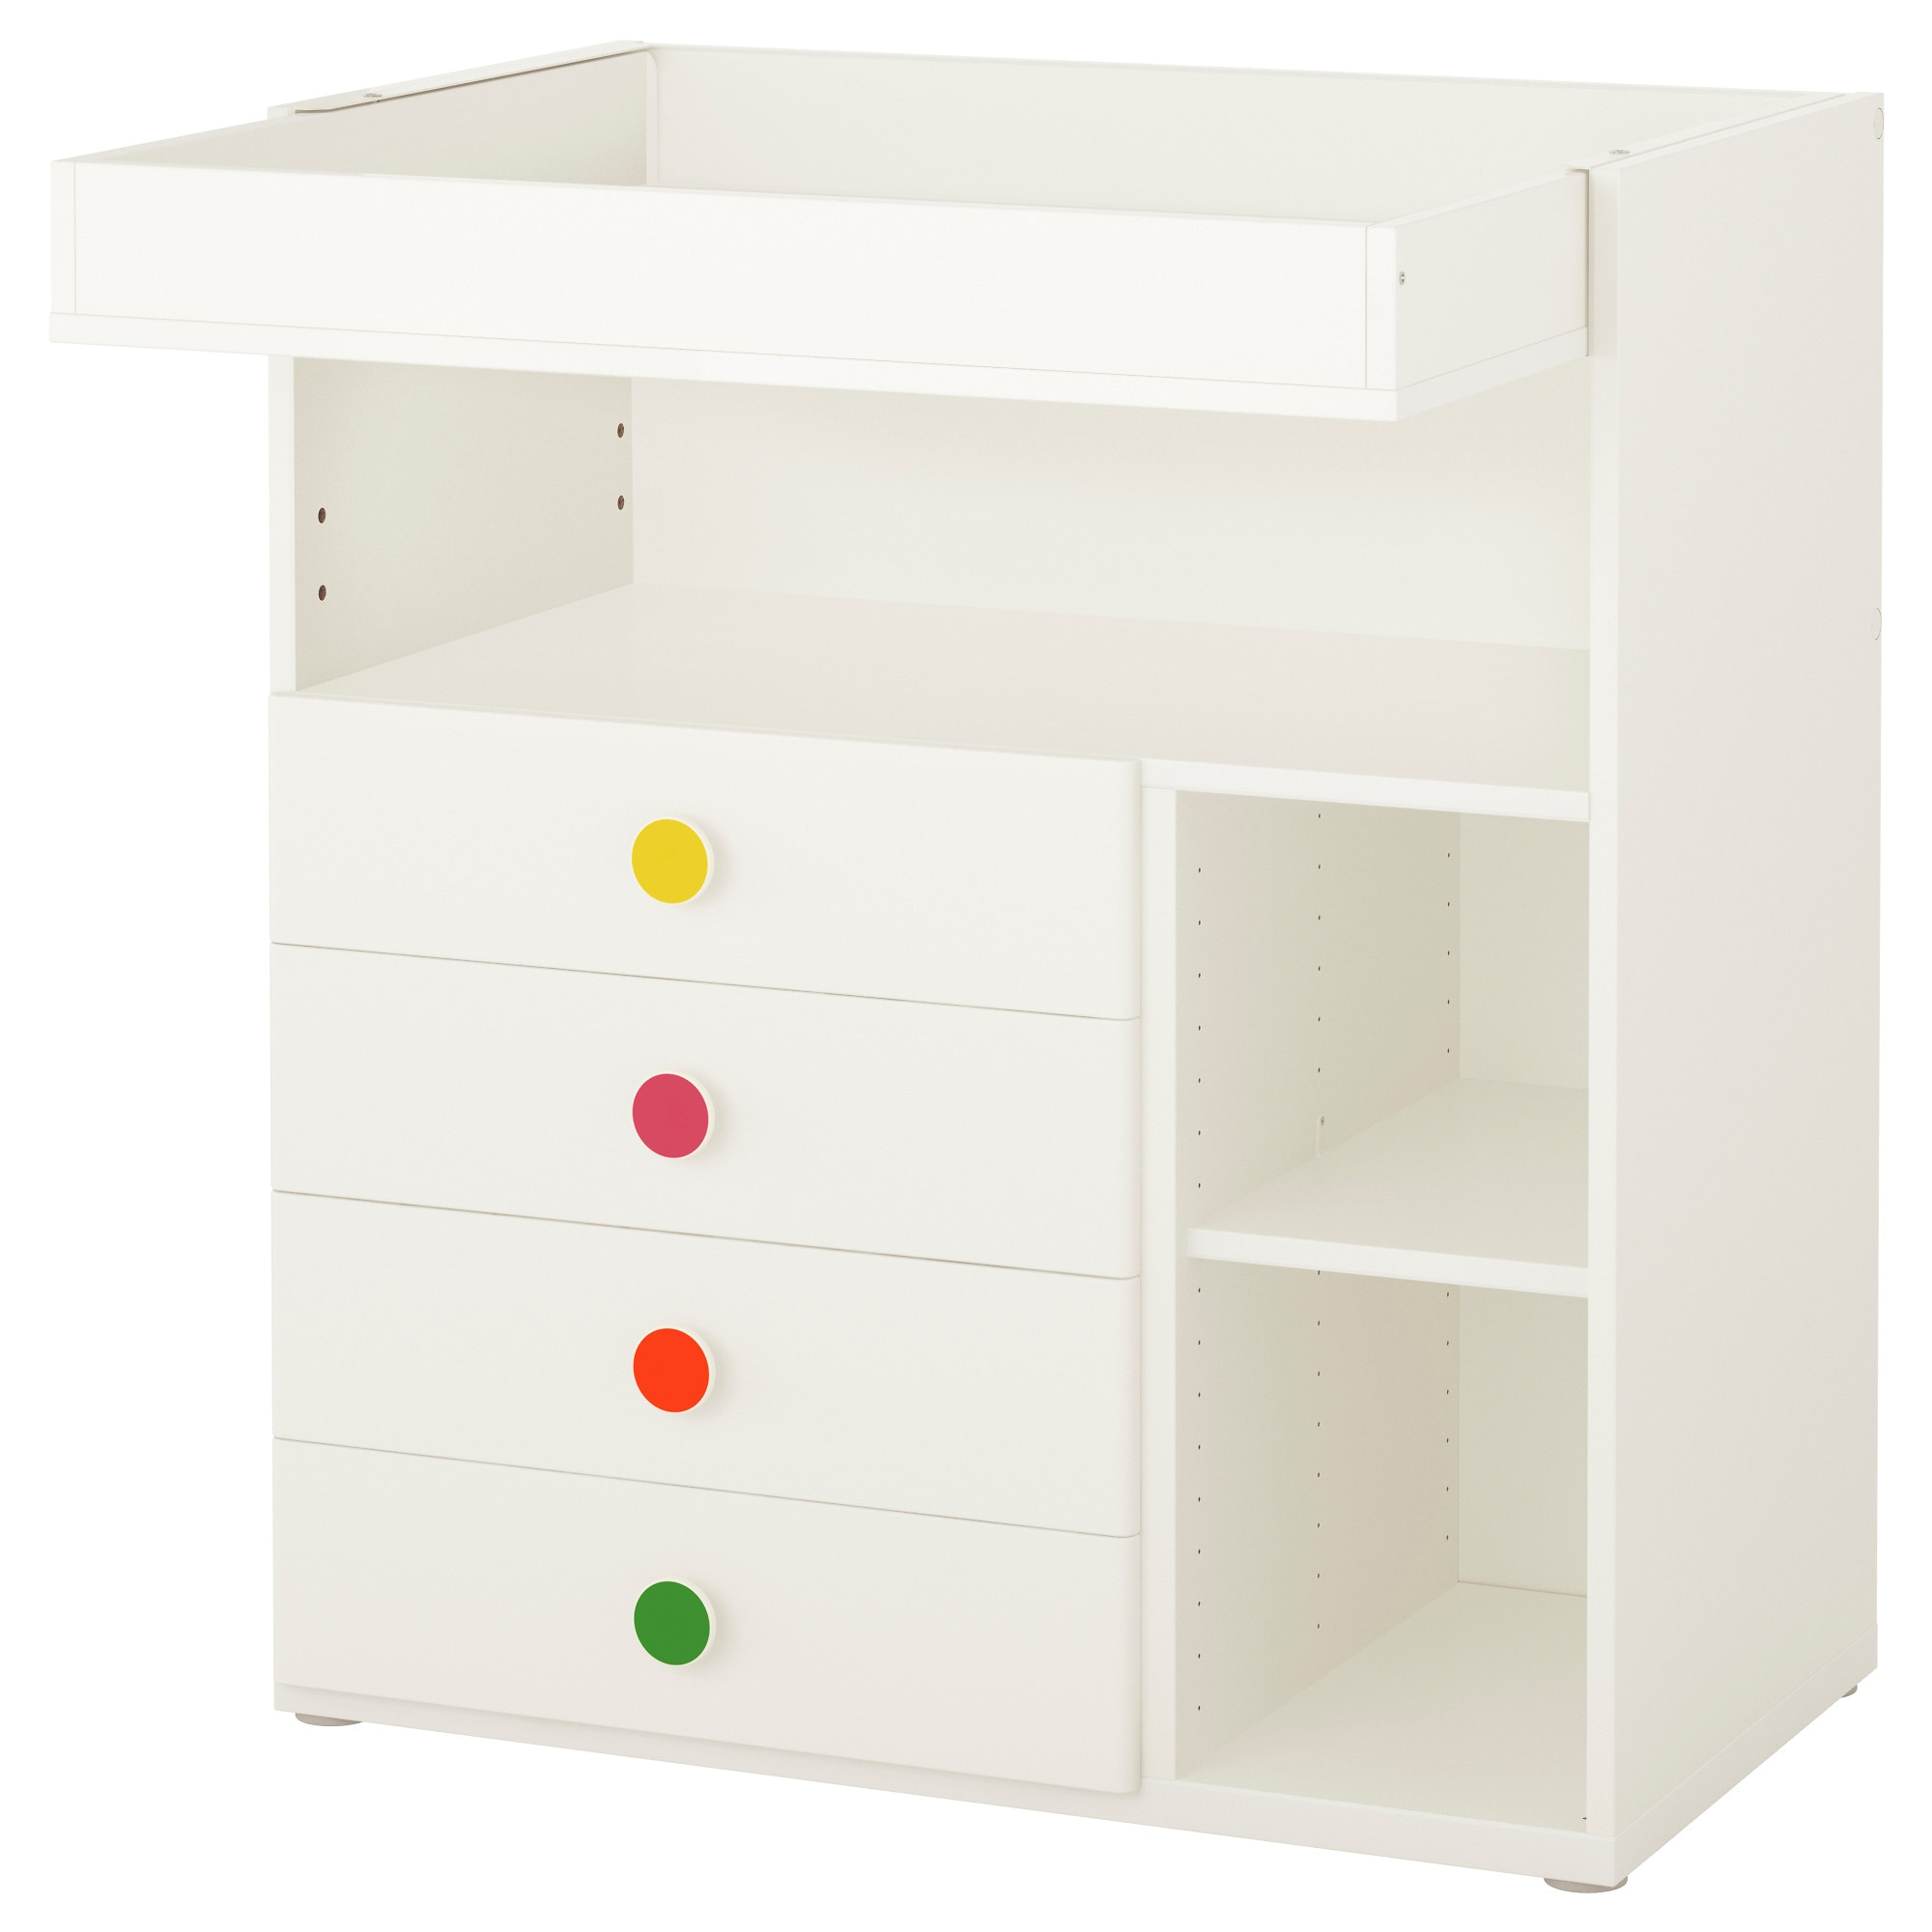 STUVA / FÖLJA Changing Table With 4 Drawers, White Width: 35 3/8